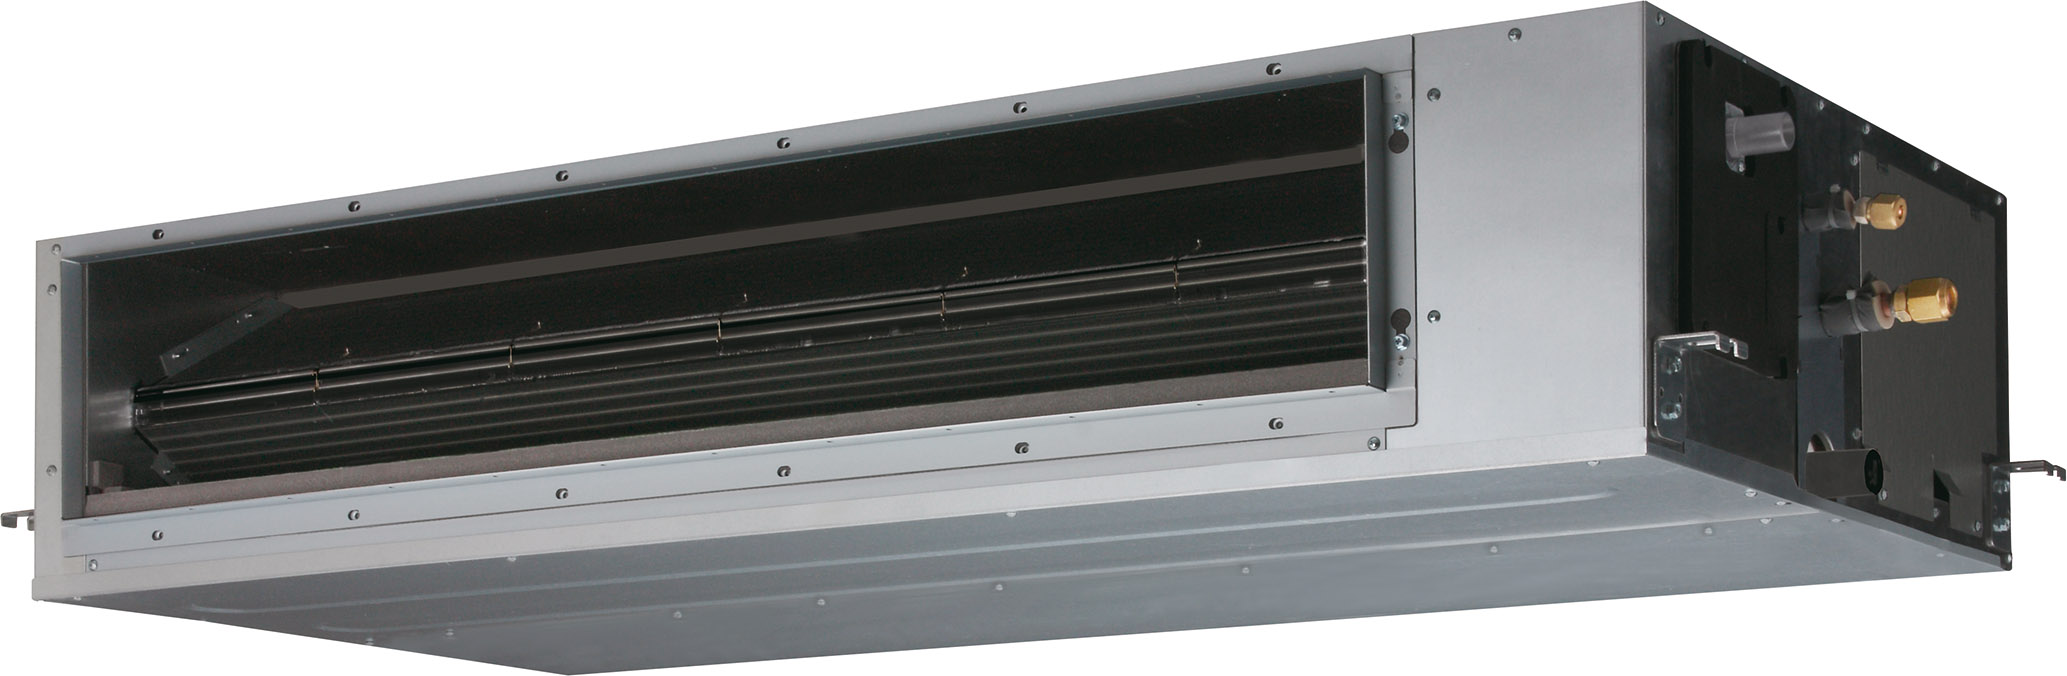 Fujitsu Next Gen Slimline V-Shapes ducted air conditioning ARTG36LHTDP (11.2kW heat) Image